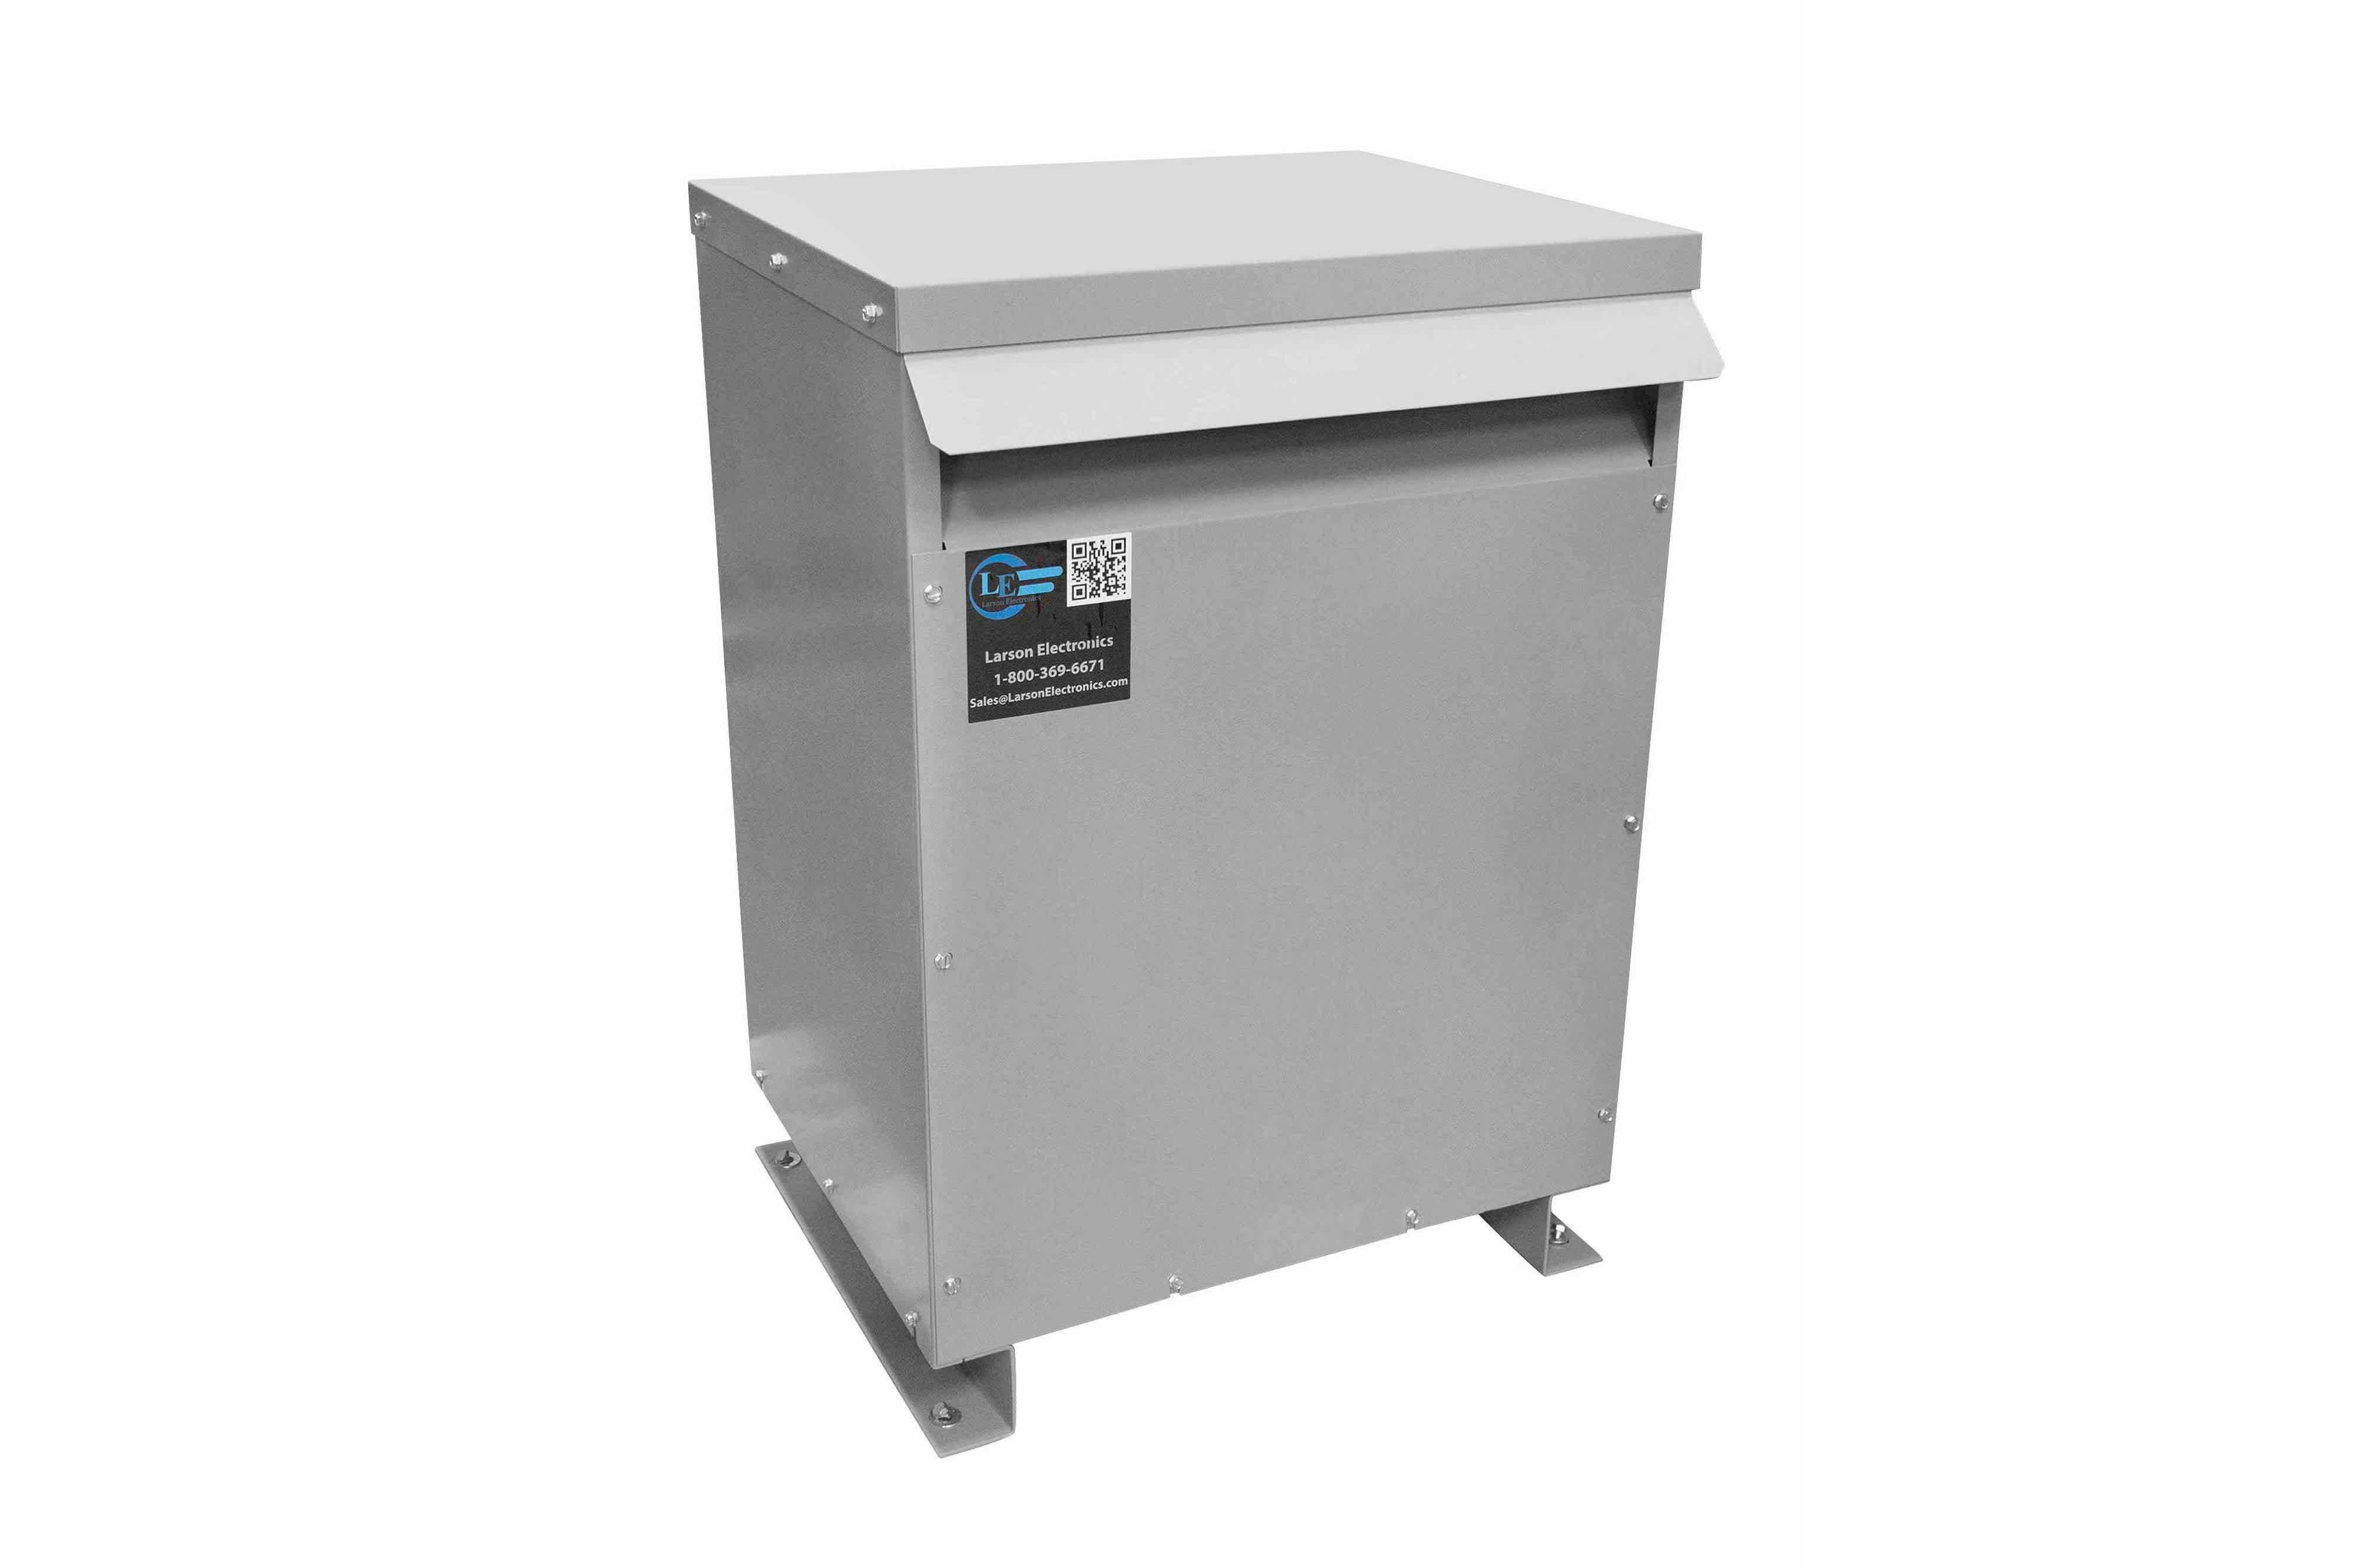 12 kVA 3PH Isolation Transformer, 240V Wye Primary, 400Y/231 Wye-N Secondary, N3R, Ventilated, 60 Hz